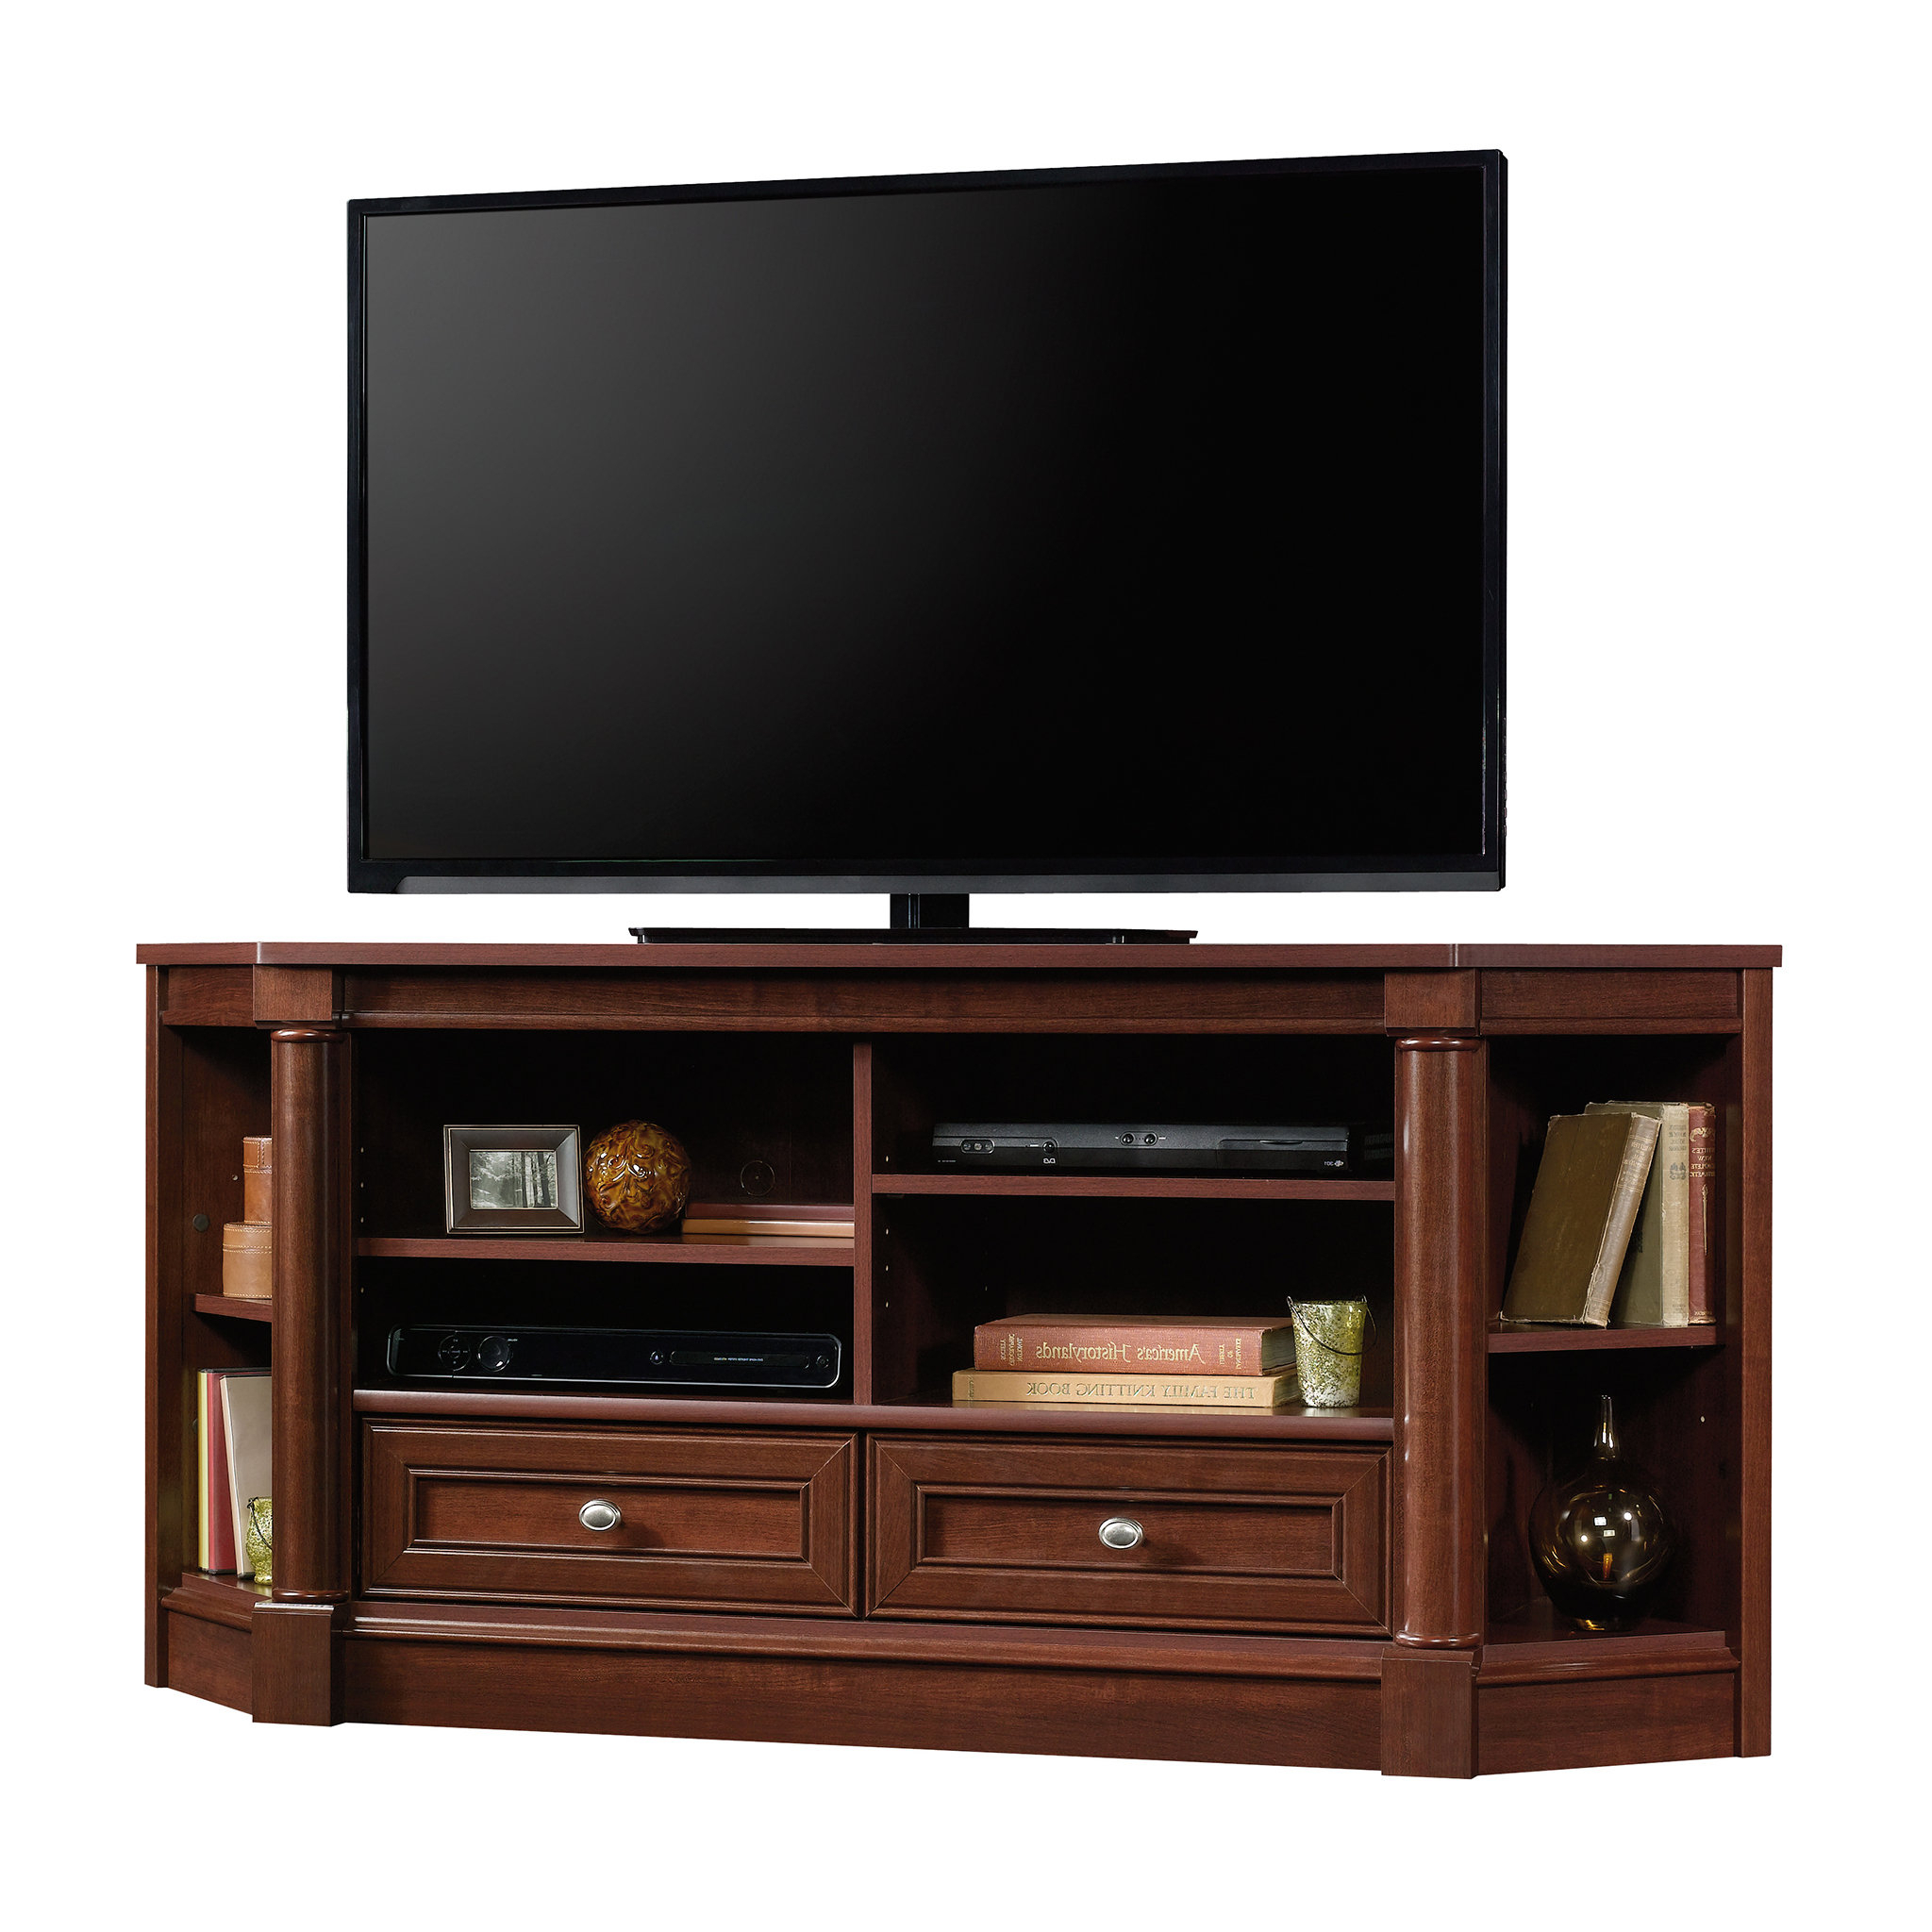 Joss & Main Throughout Maddy 50 Inch Tv Stands (View 7 of 20)